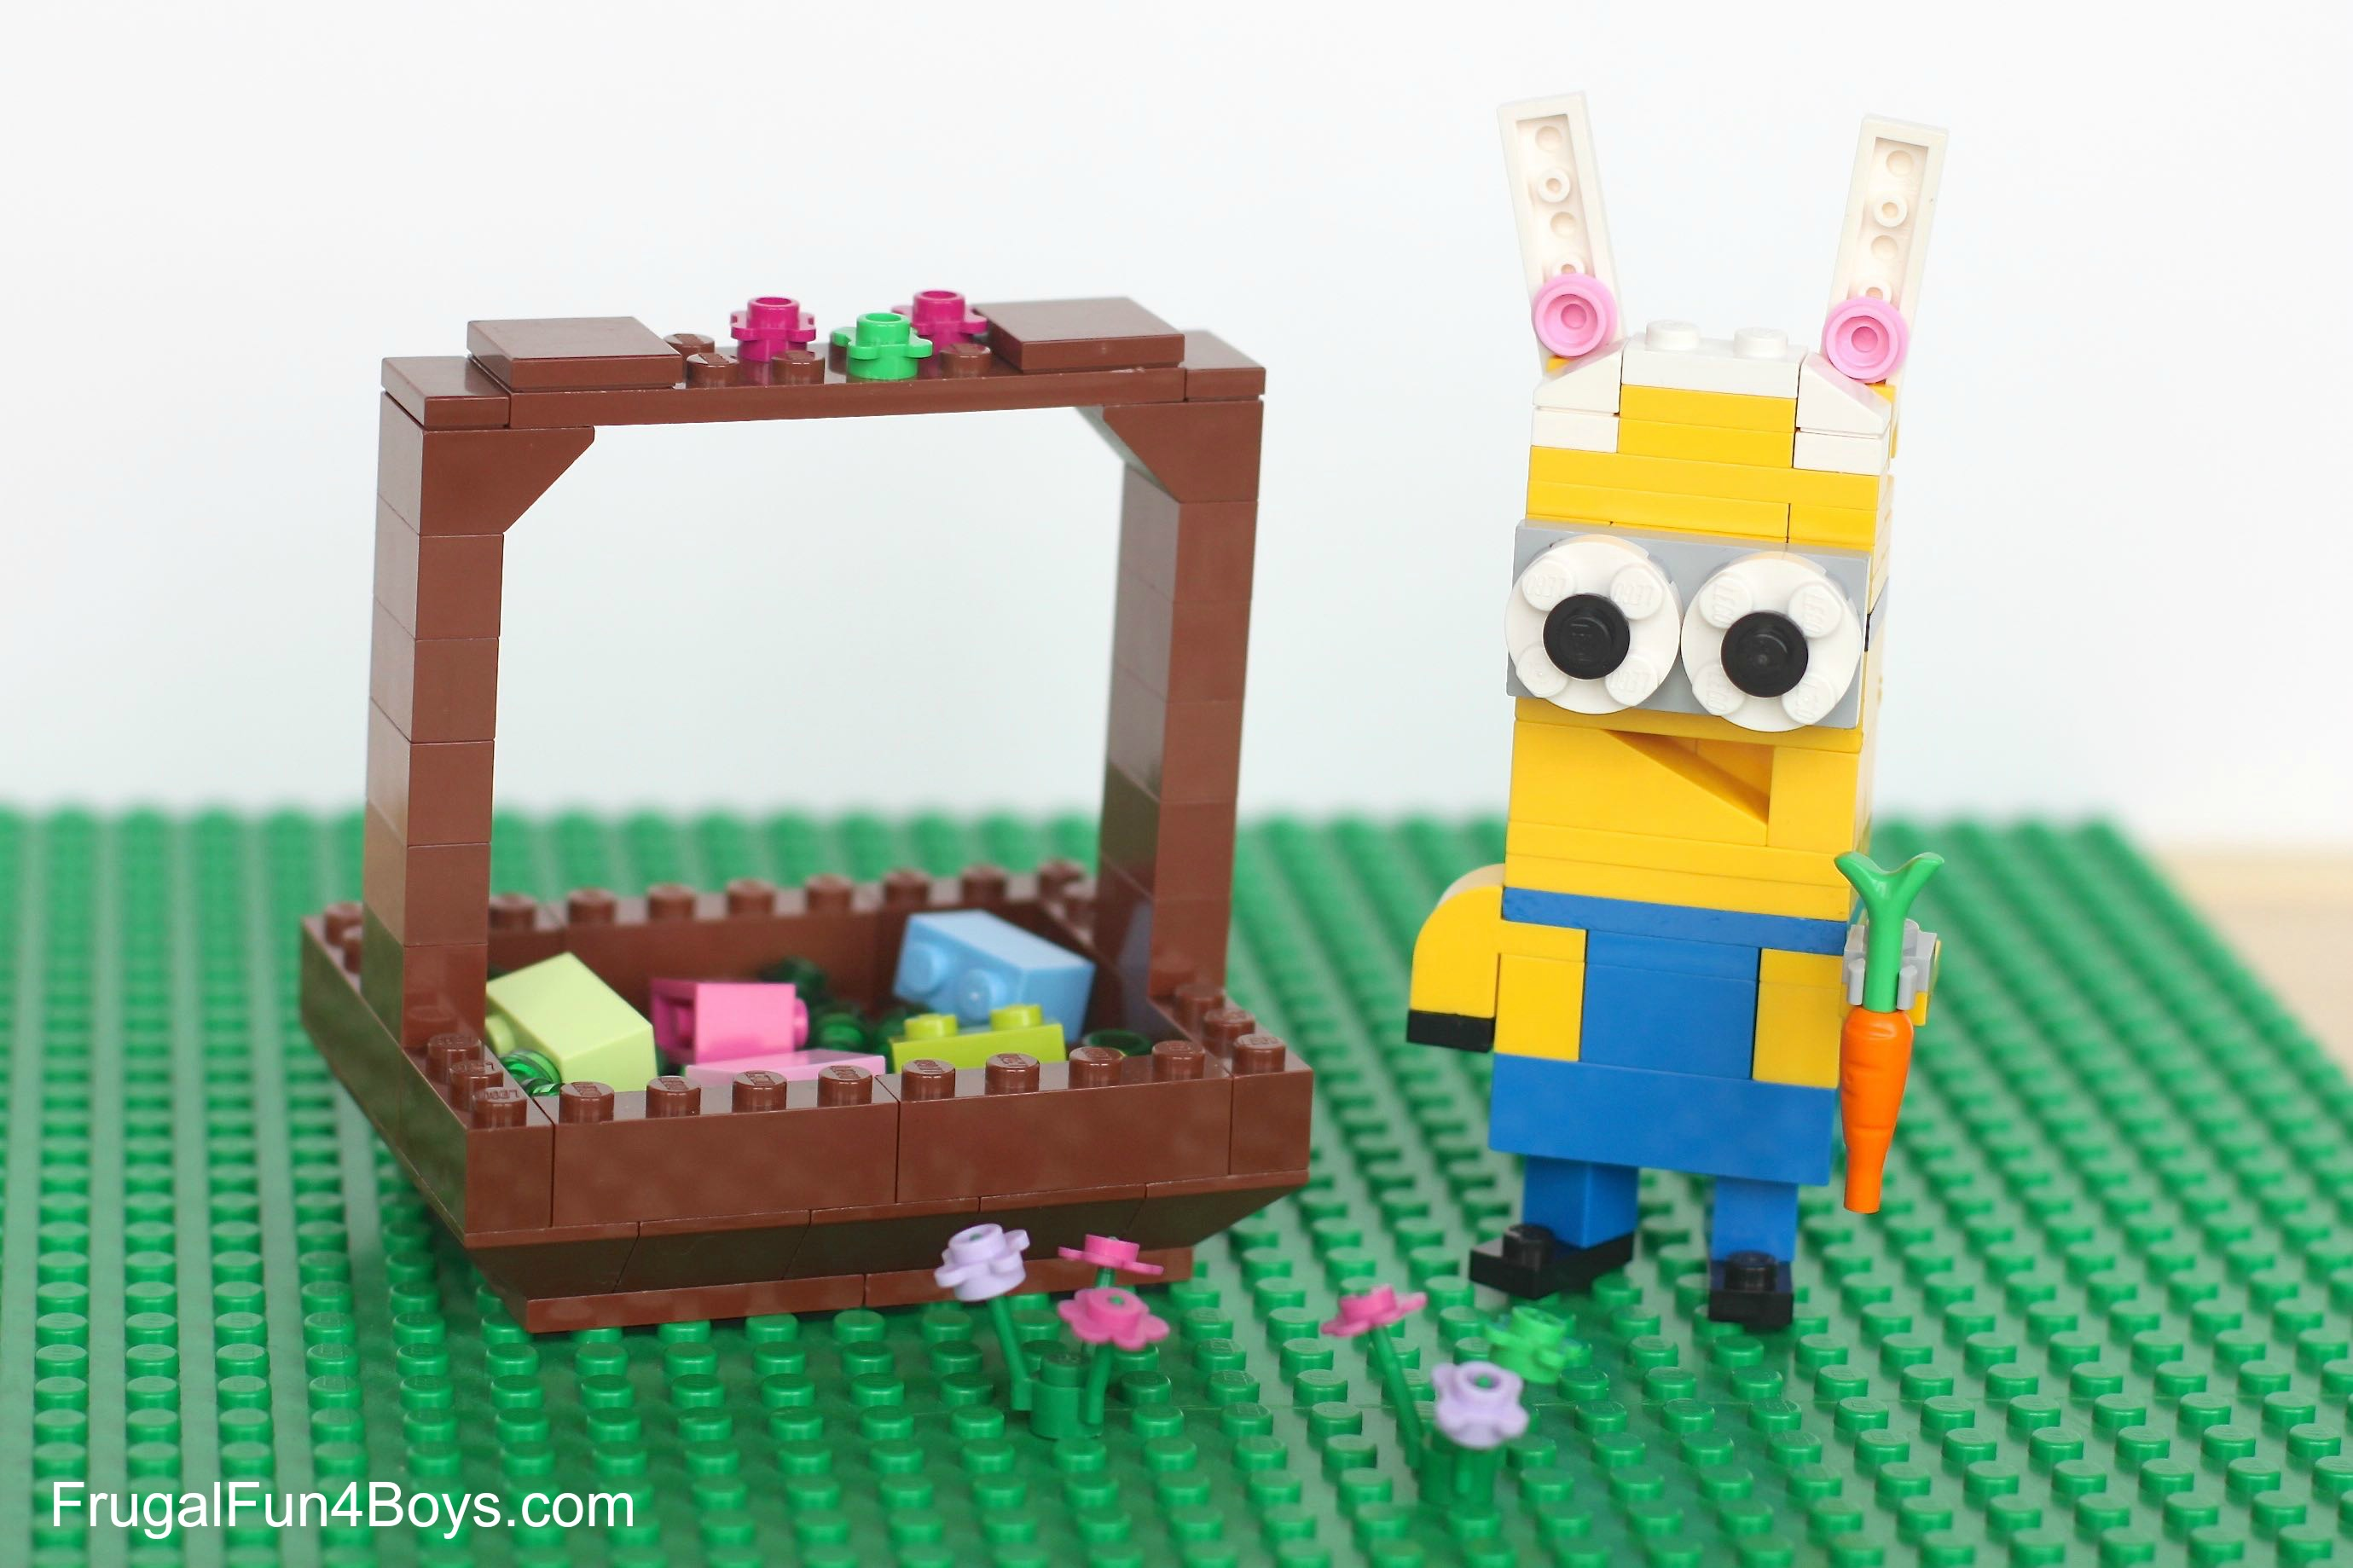 Five Spring Lego Projects to Build